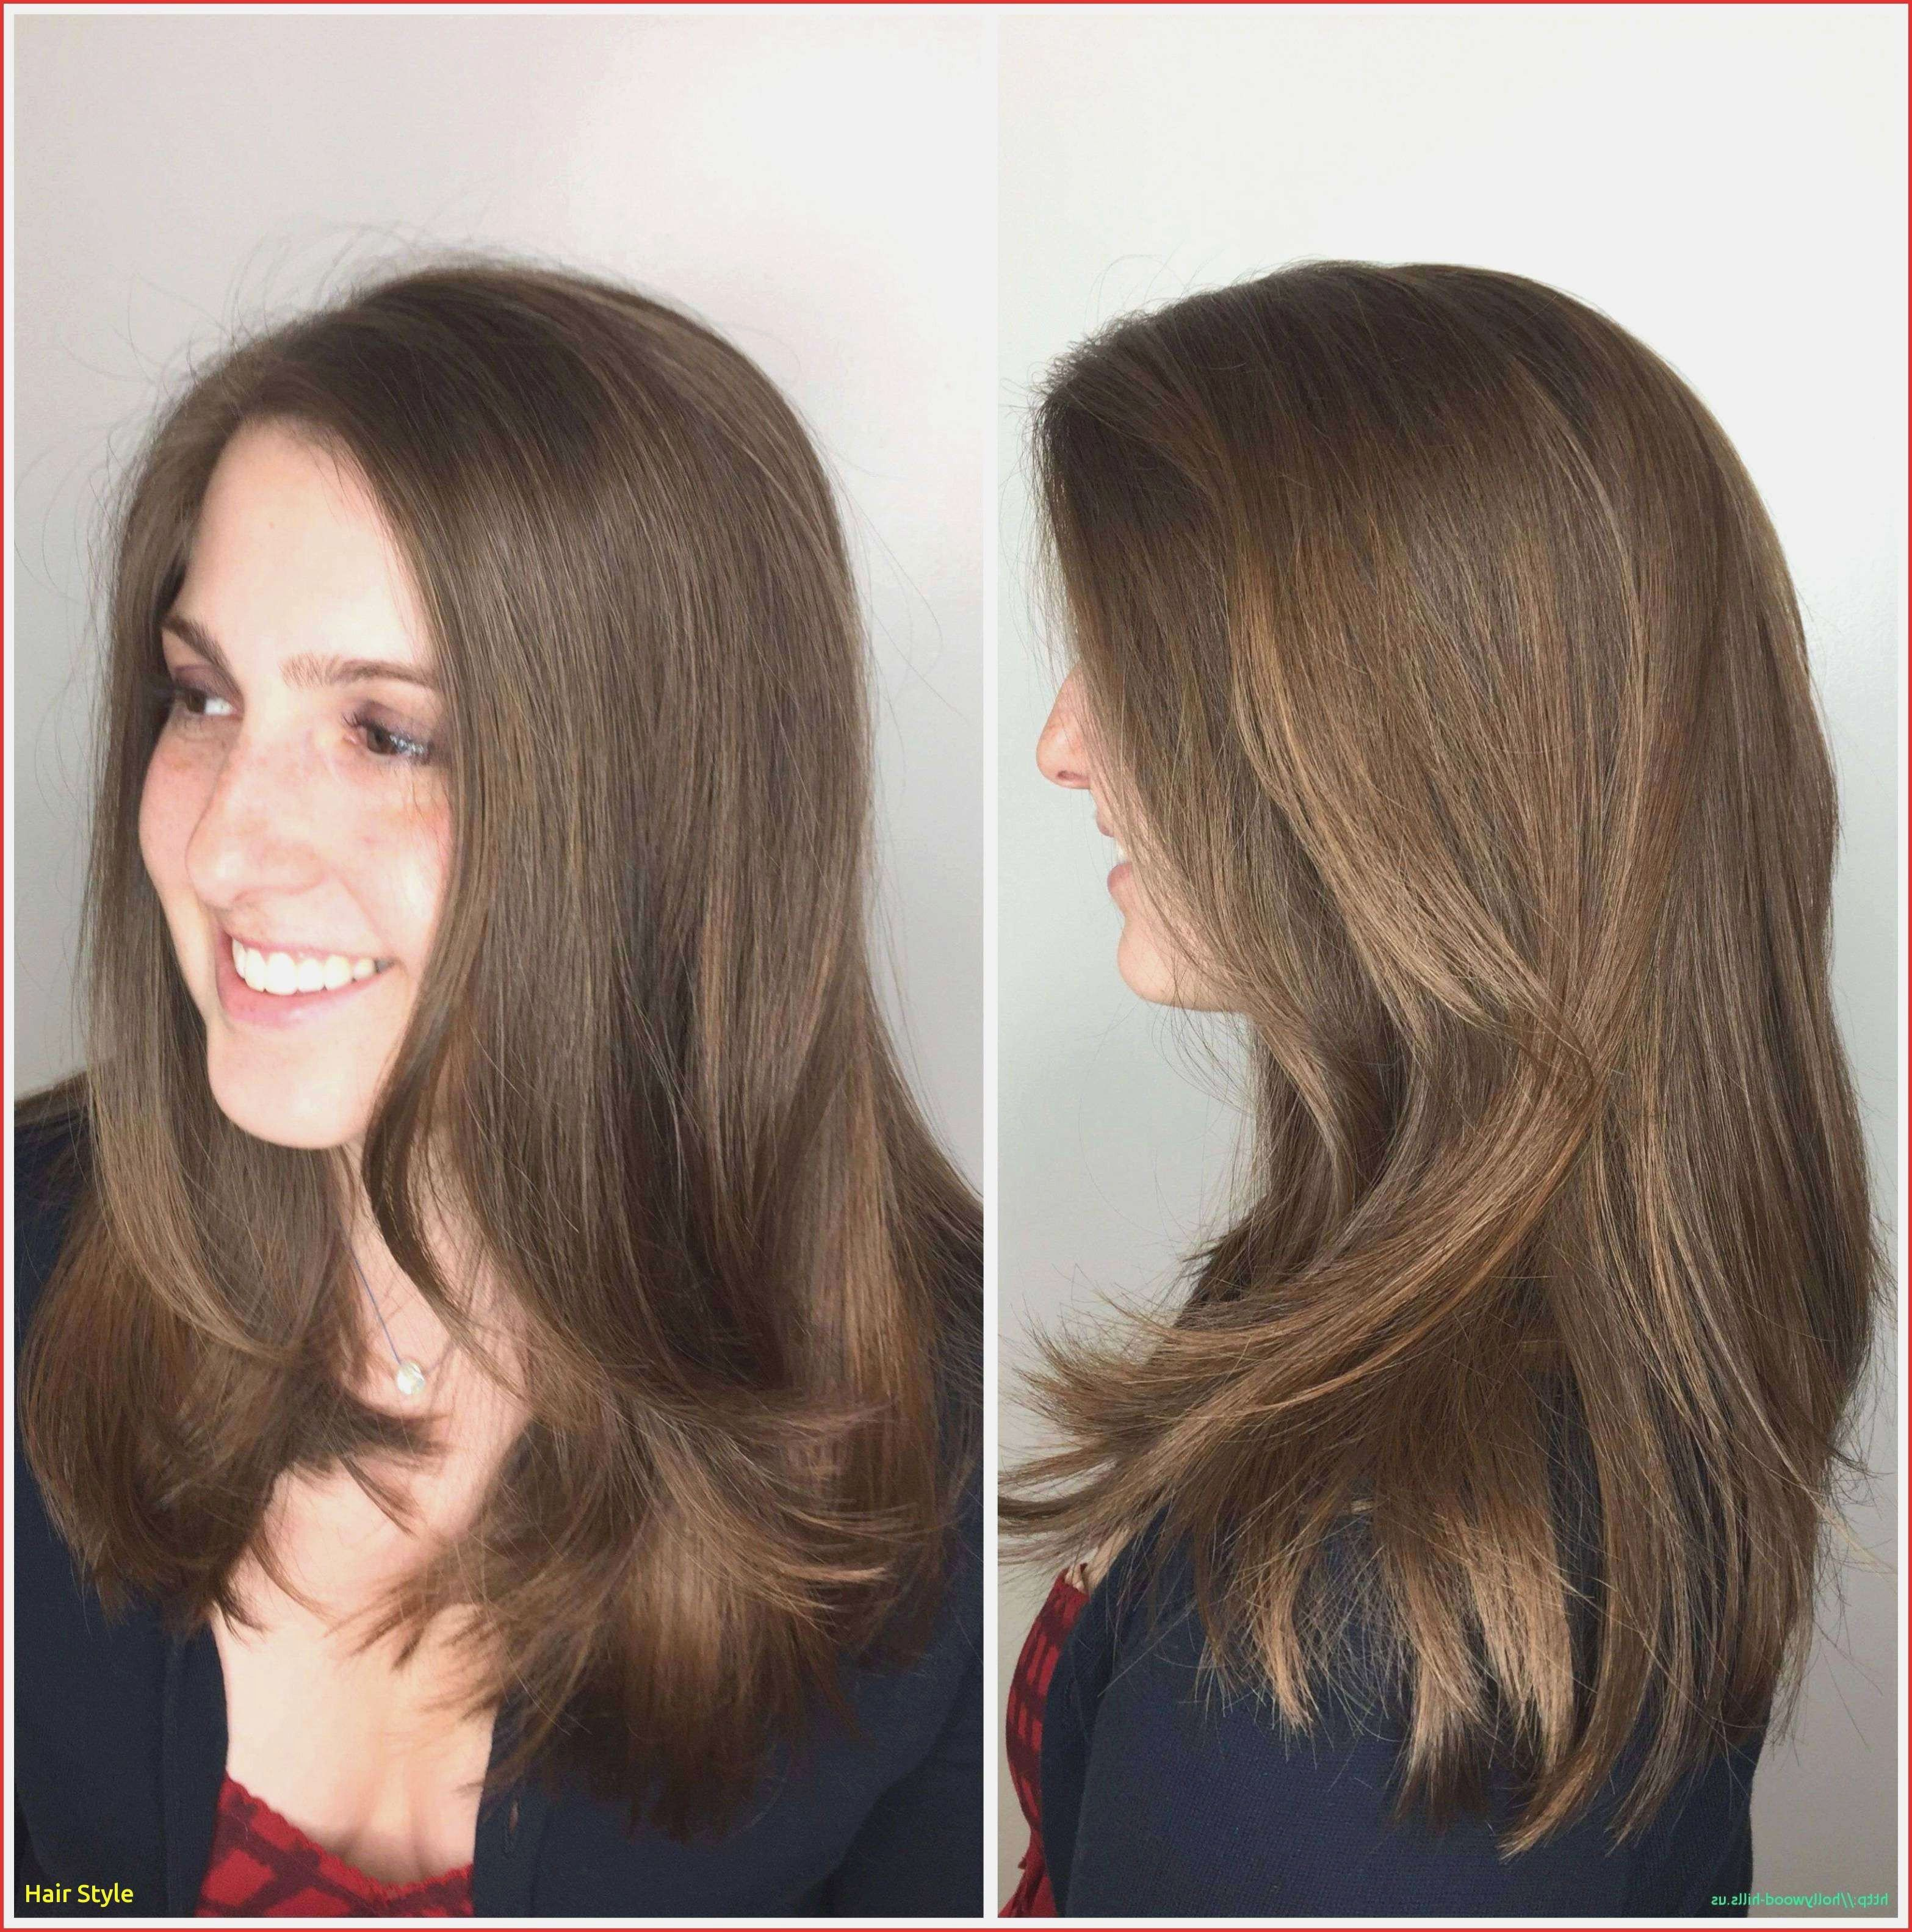 Thinning Hair Women Thinninghairwomen Loreal Preference Hair Color Hair Styles Virtual Hairstyles